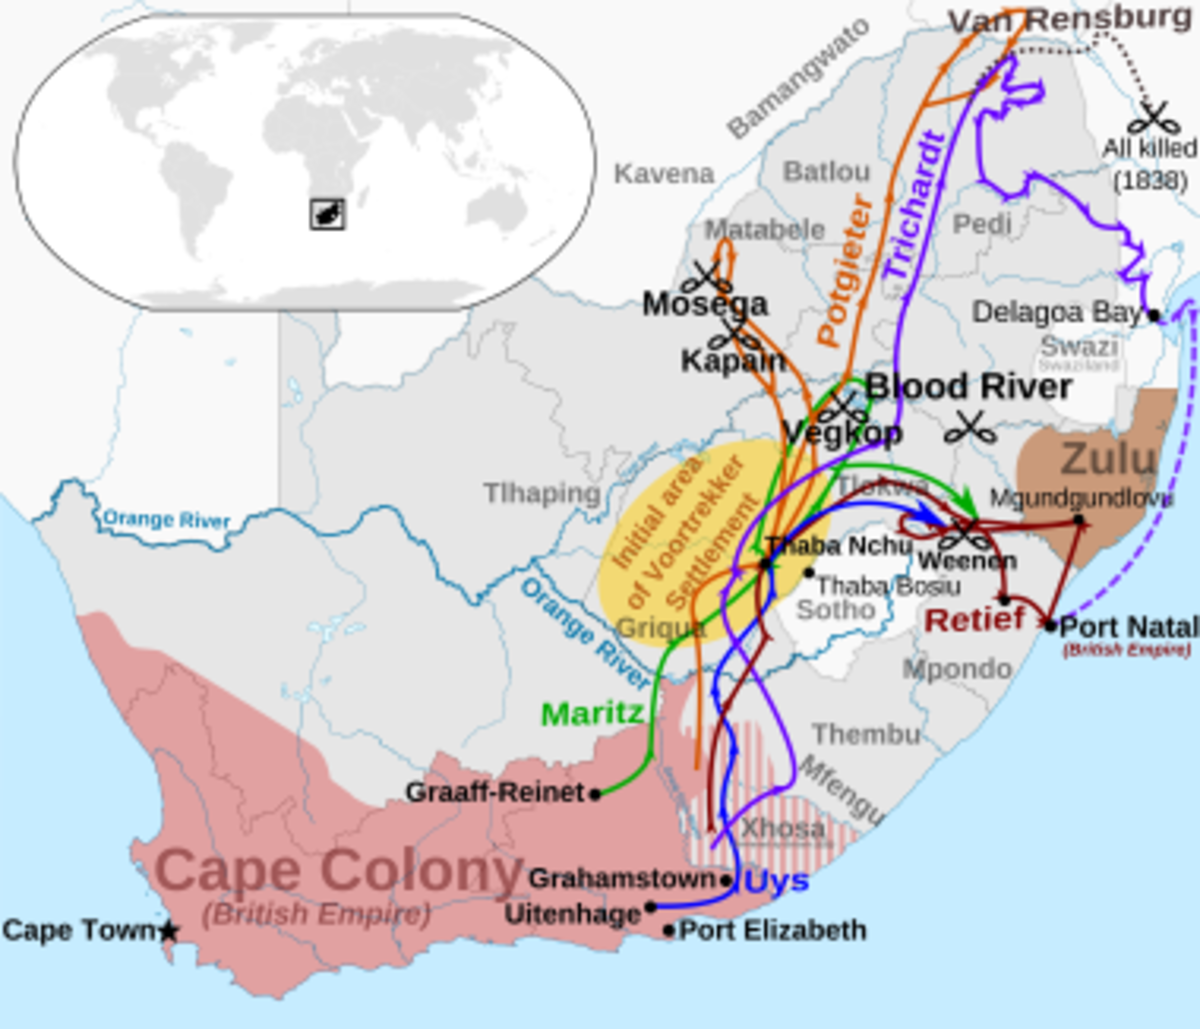 The various routes of the Great Trek, South Africa